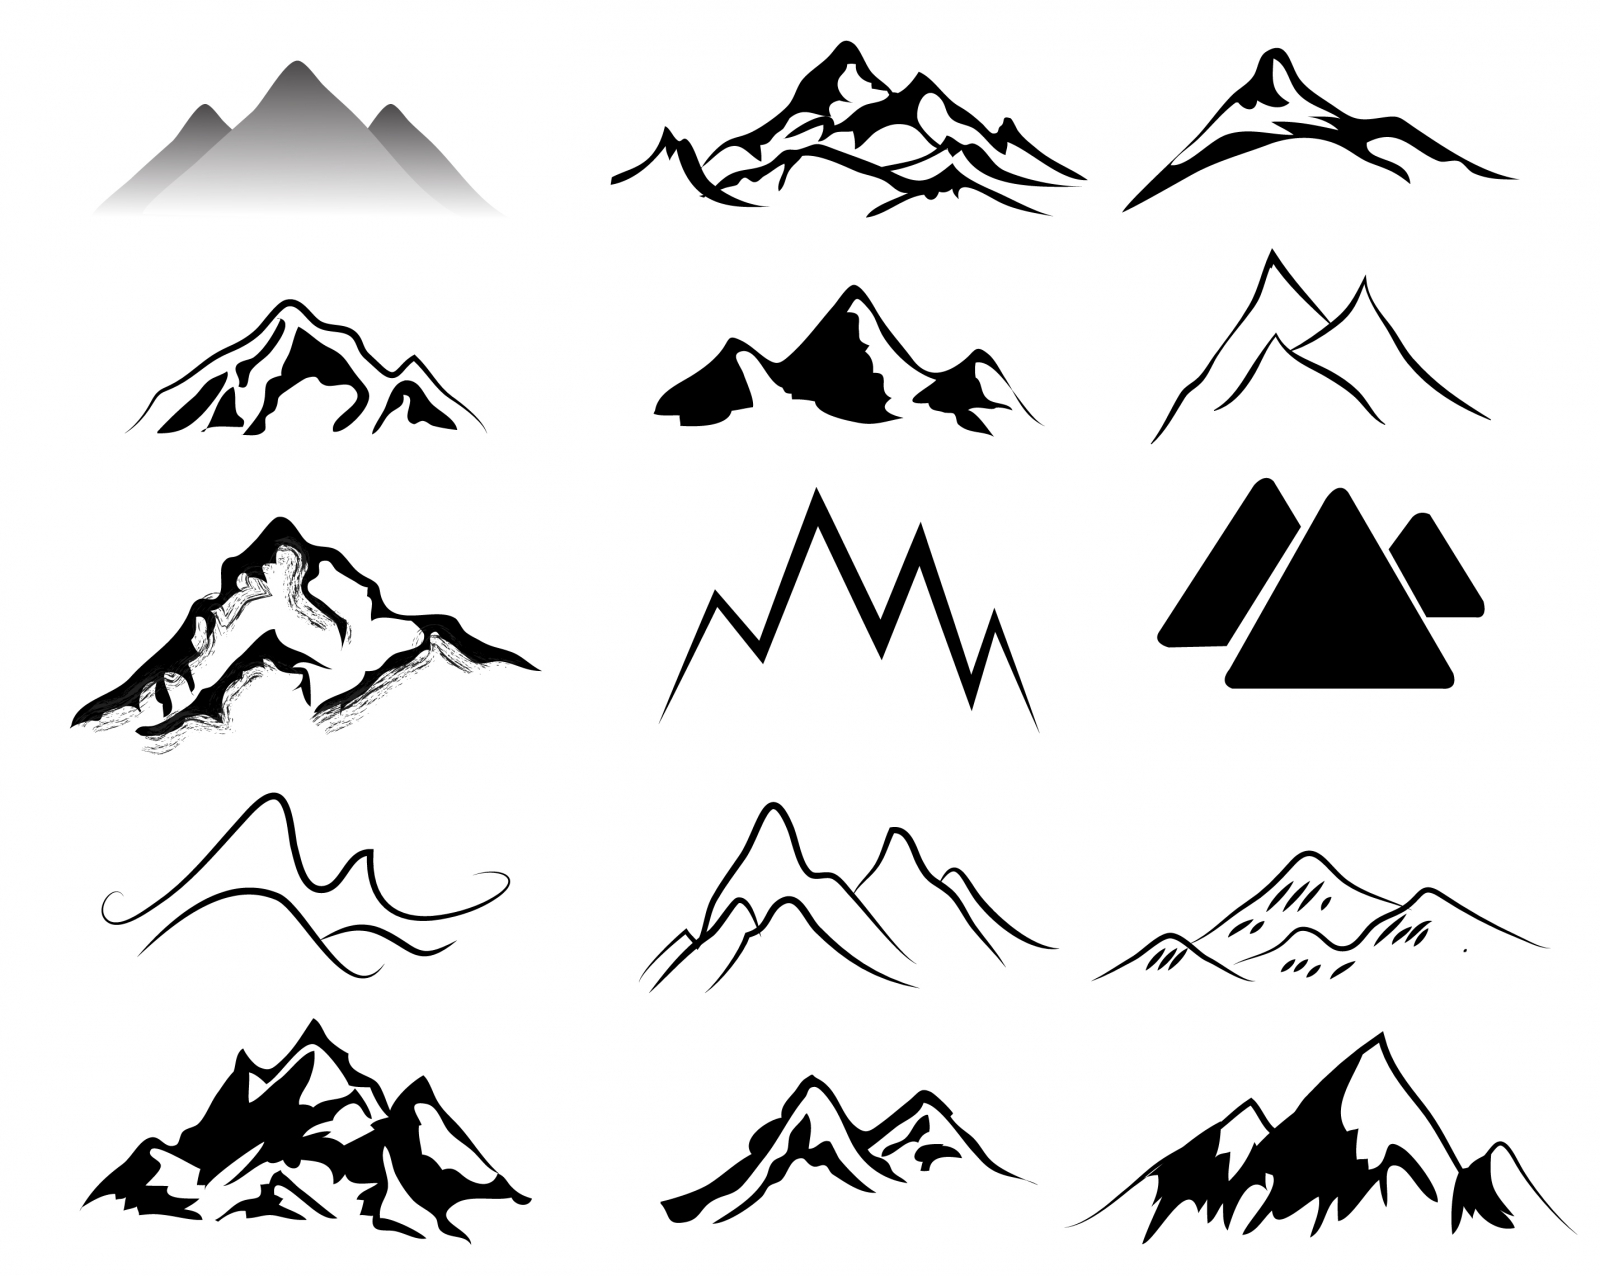 Mountain Shapes For Logos Vol 5.